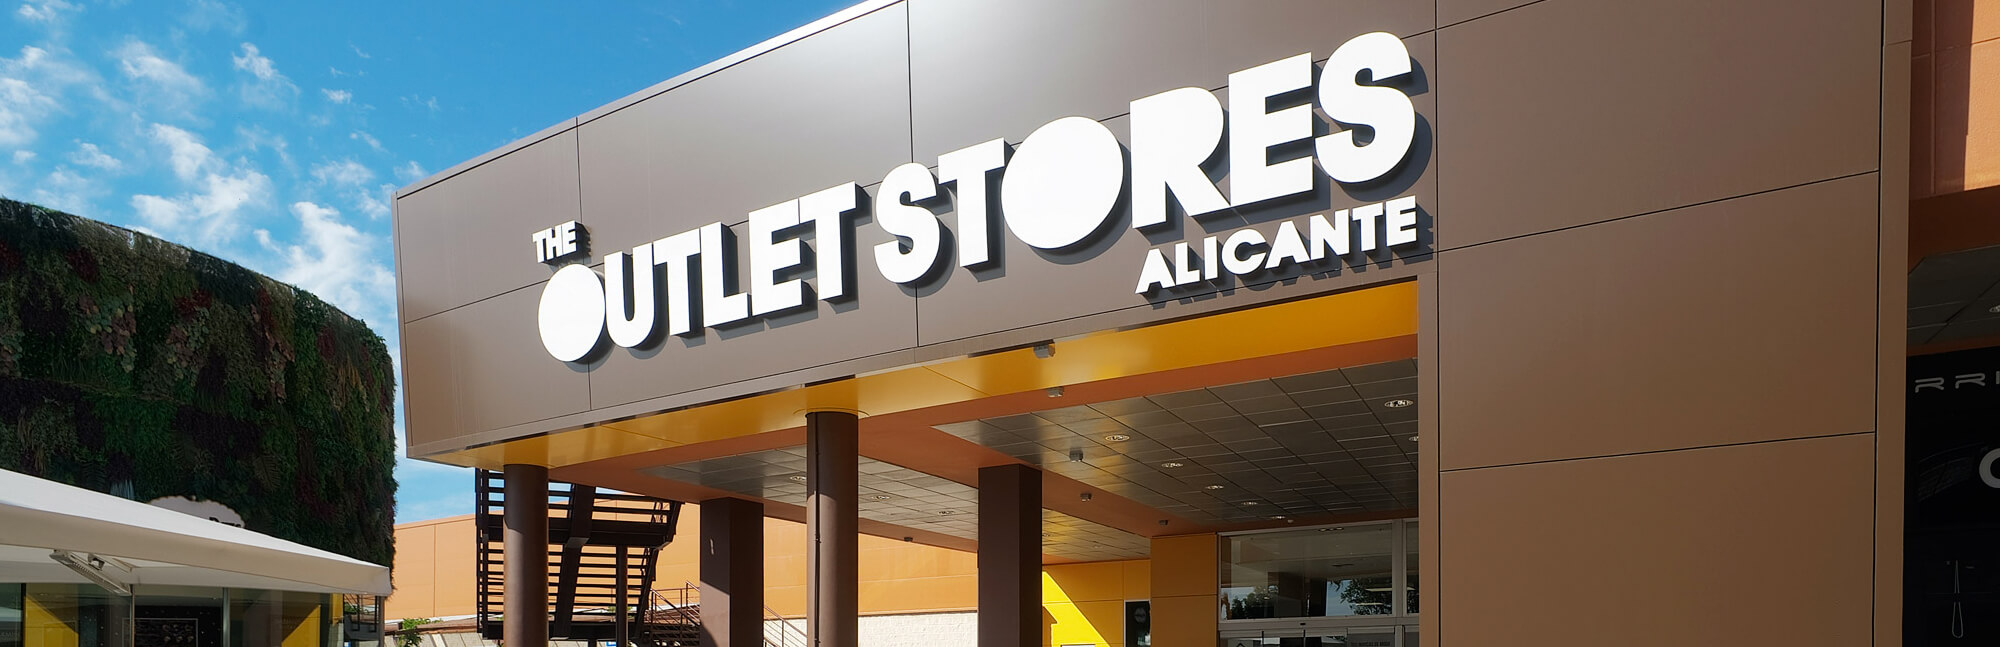 The Outlet Stores in Alicante